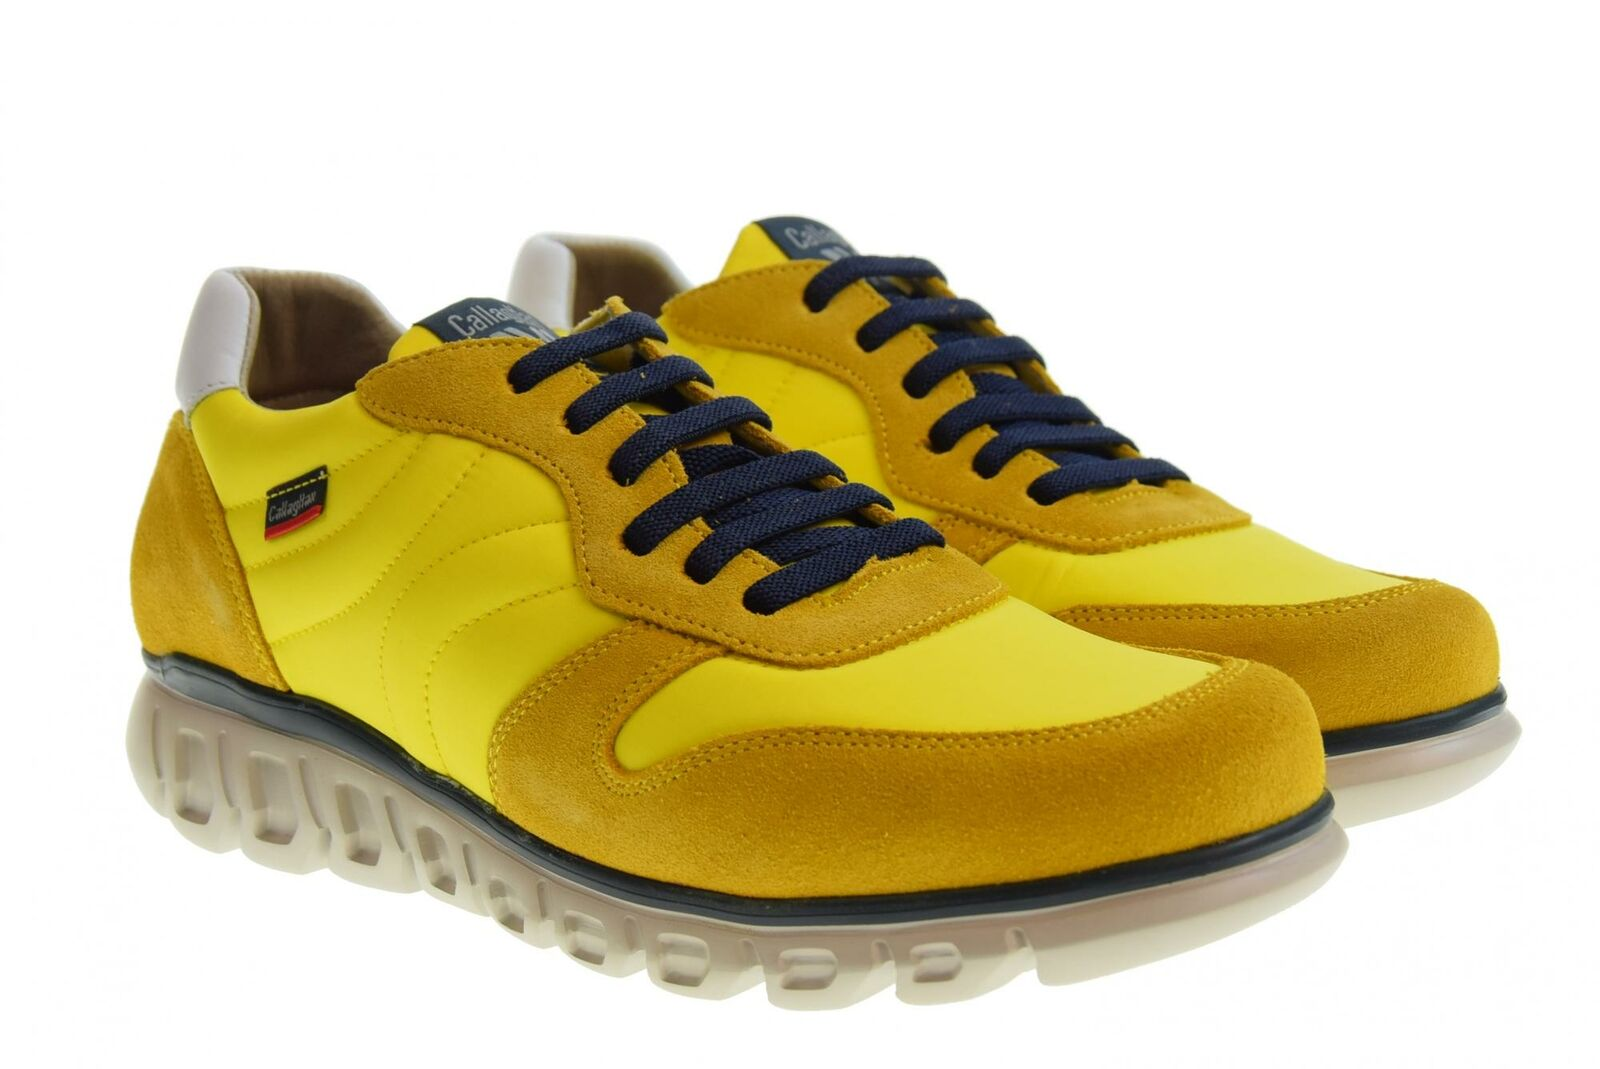 Callaghan P19us men's shoes low sneakers 12903 YELLOW